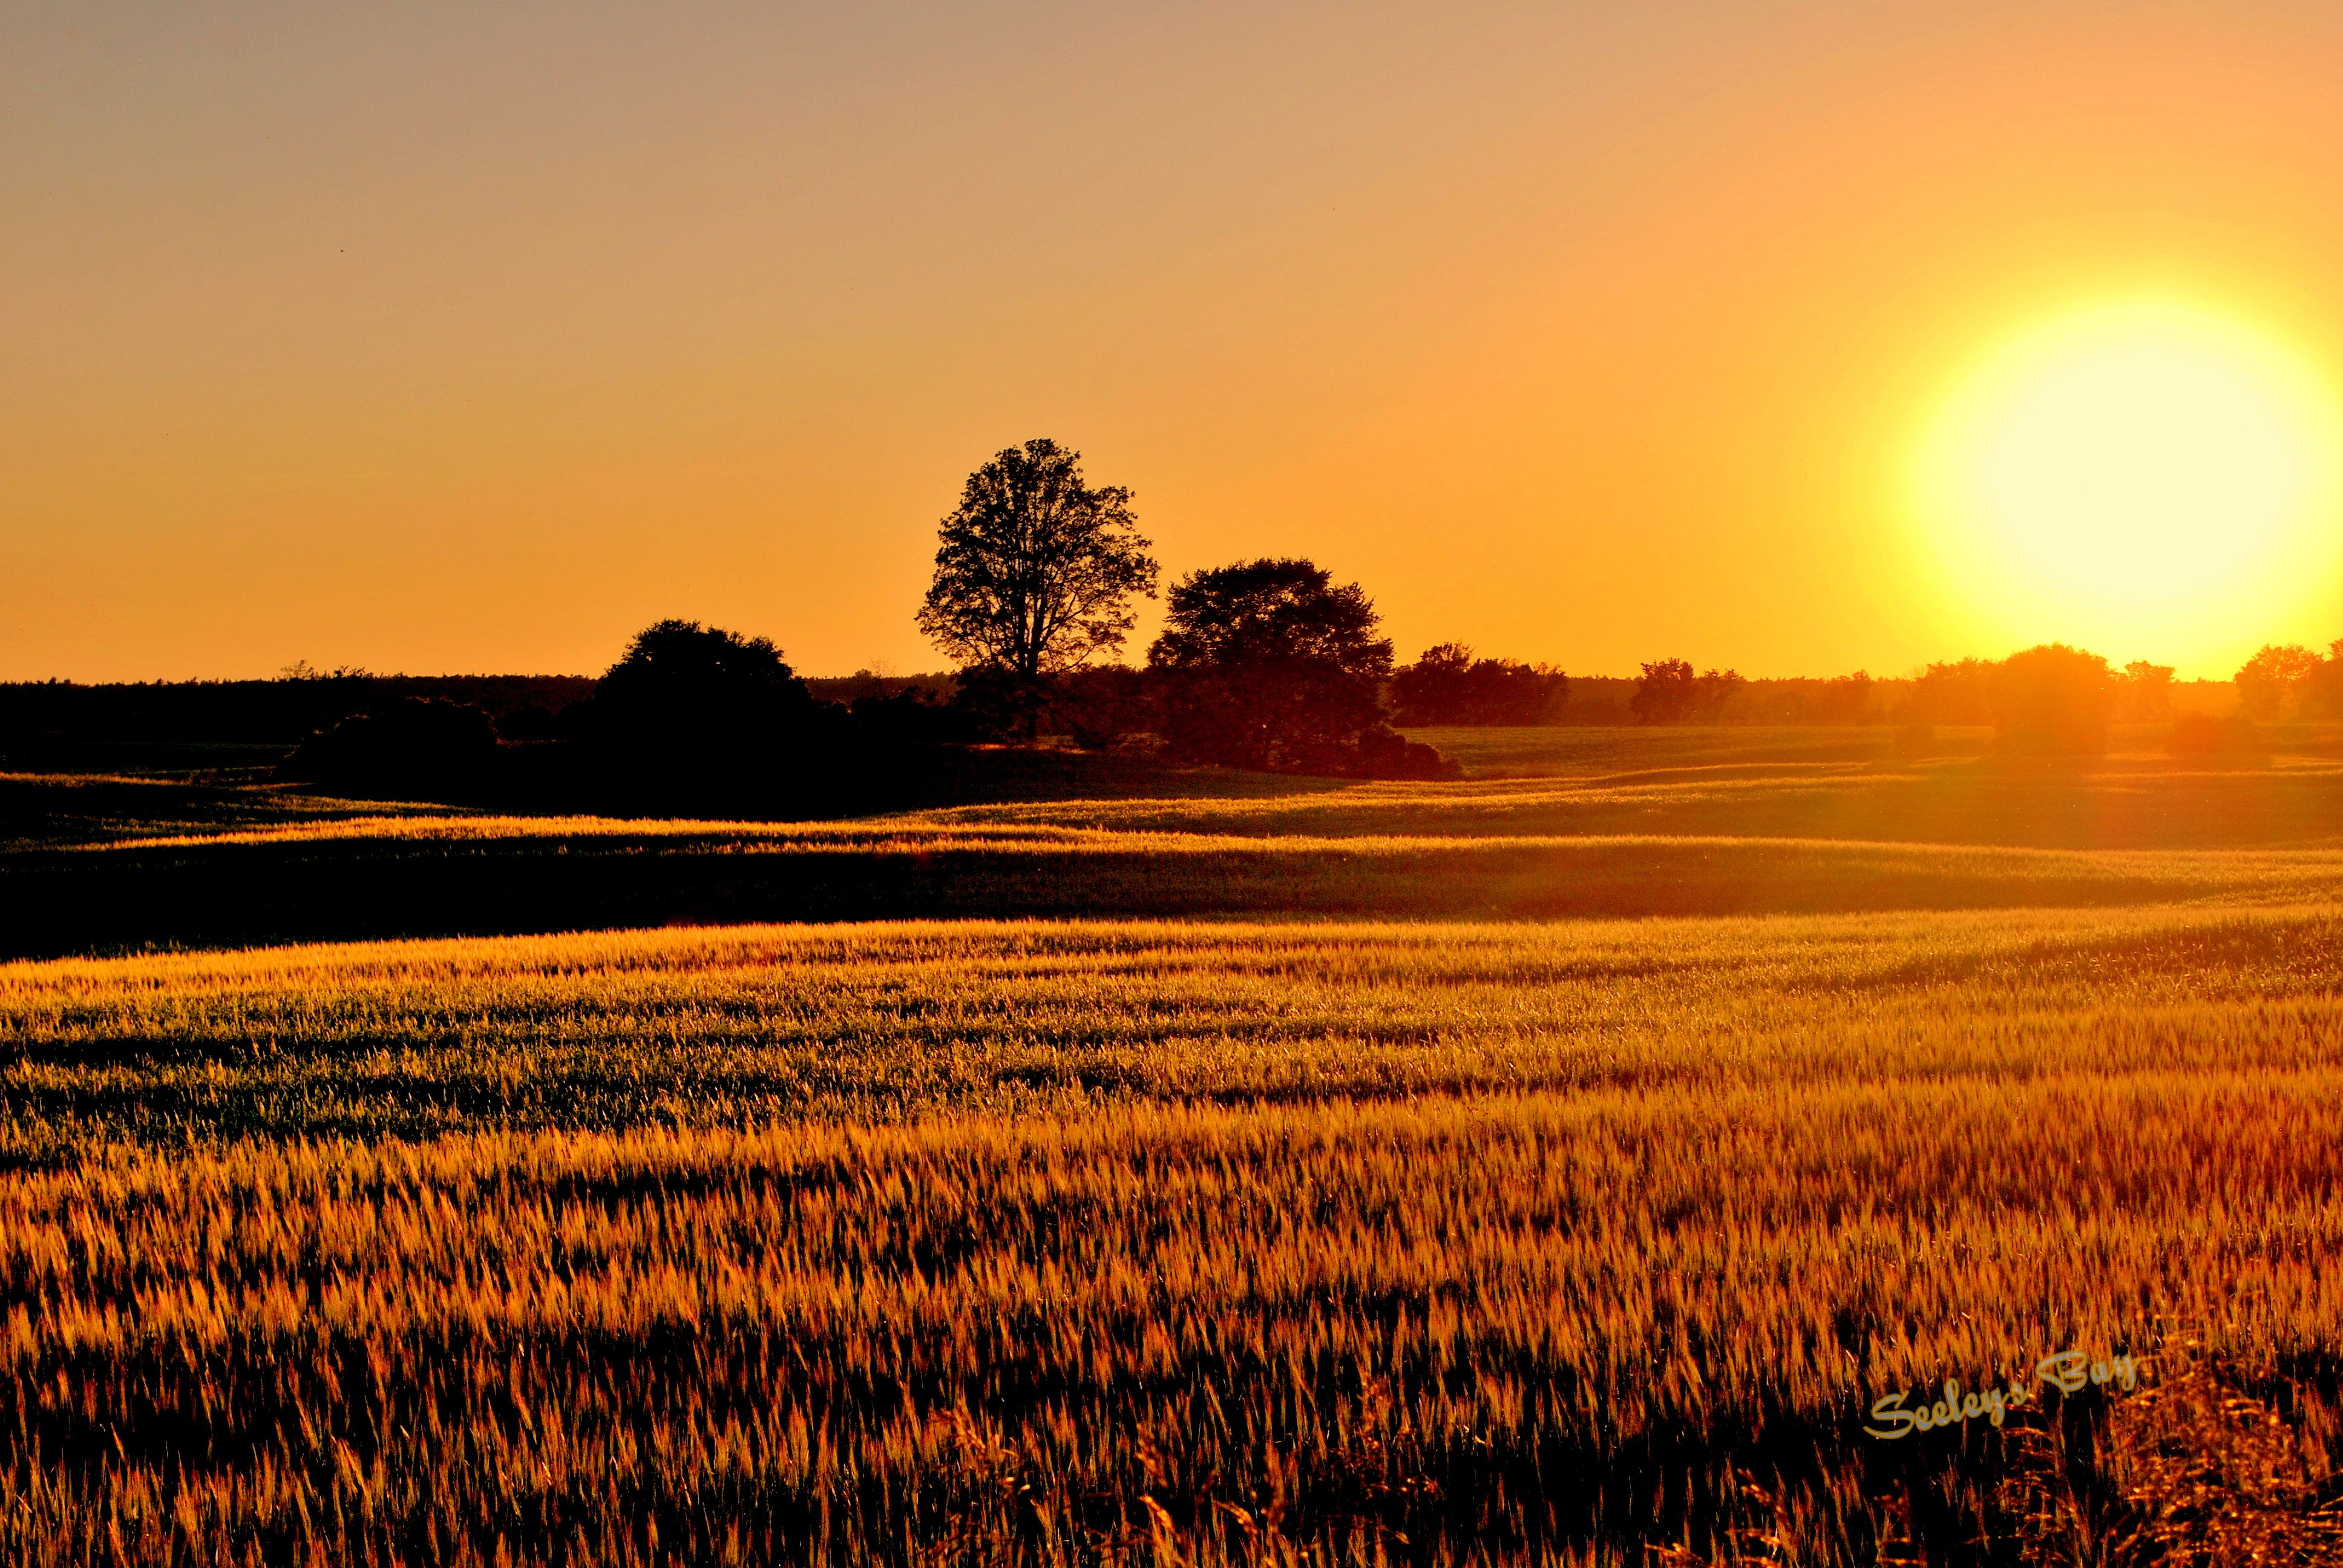 Sunset over farm fields in Seeley's Bay   Around my house ...